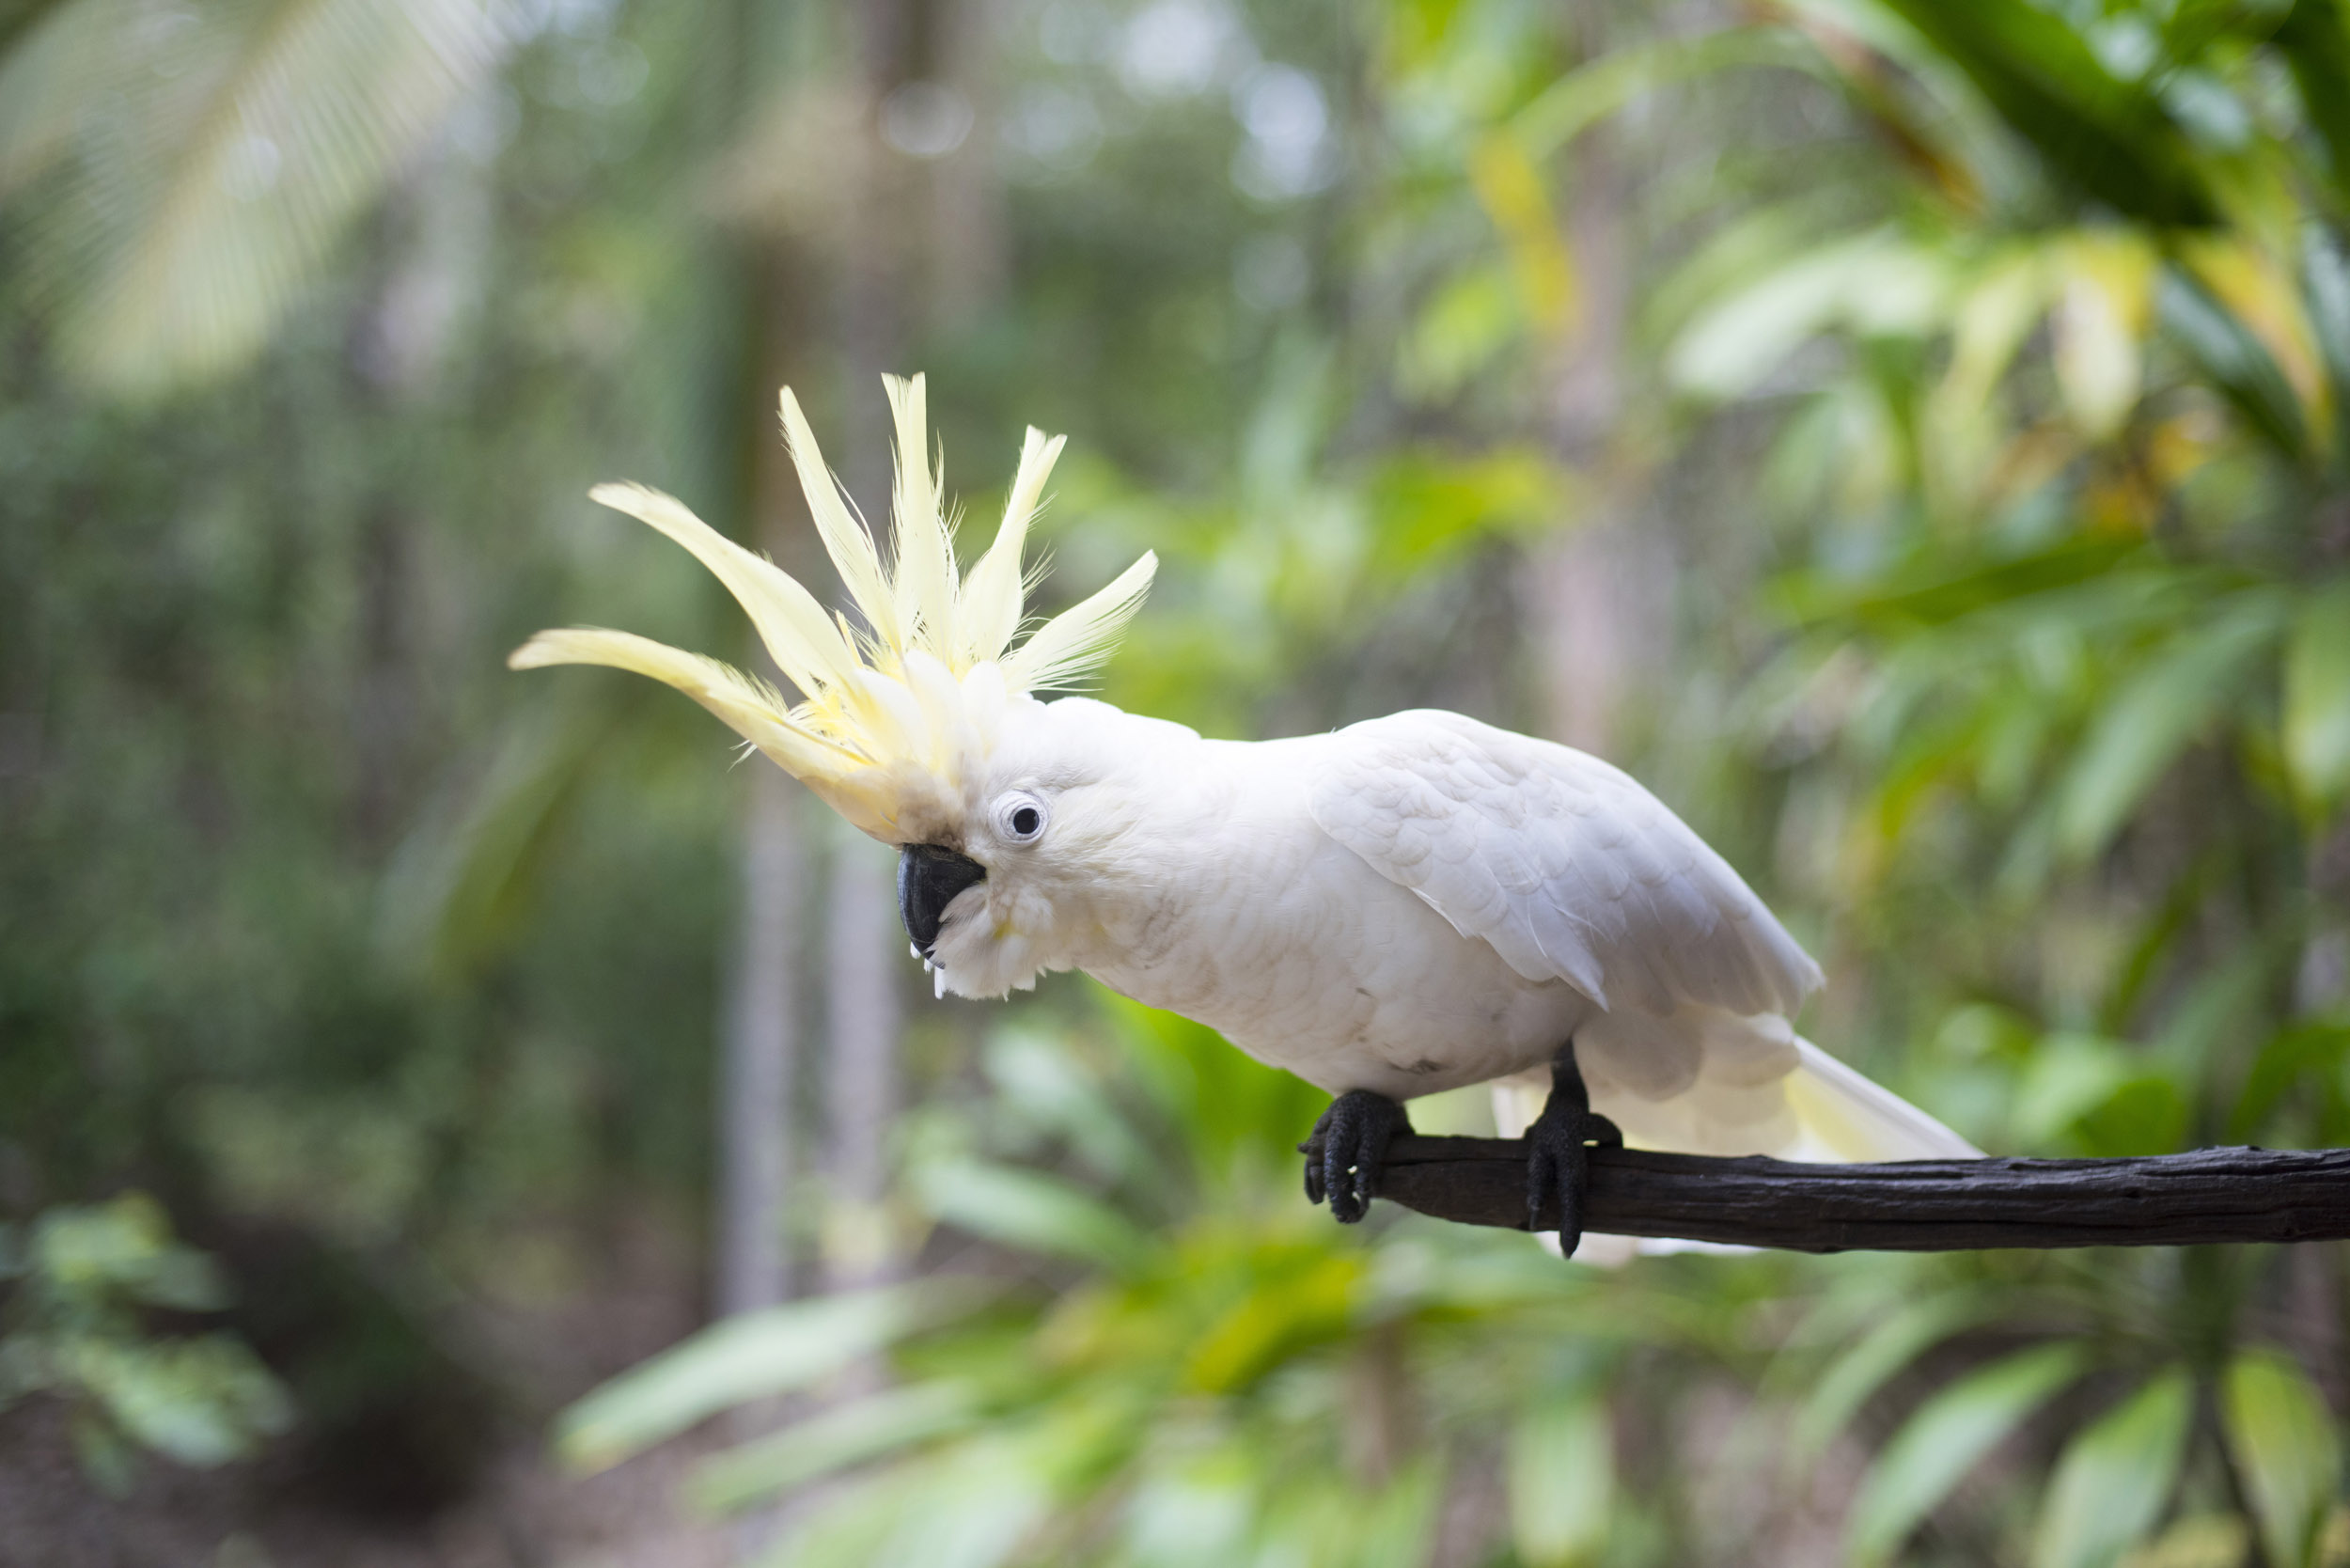 A playful, cheeky Australian Sulphur Crested Cockatoo with raised yellow crest.